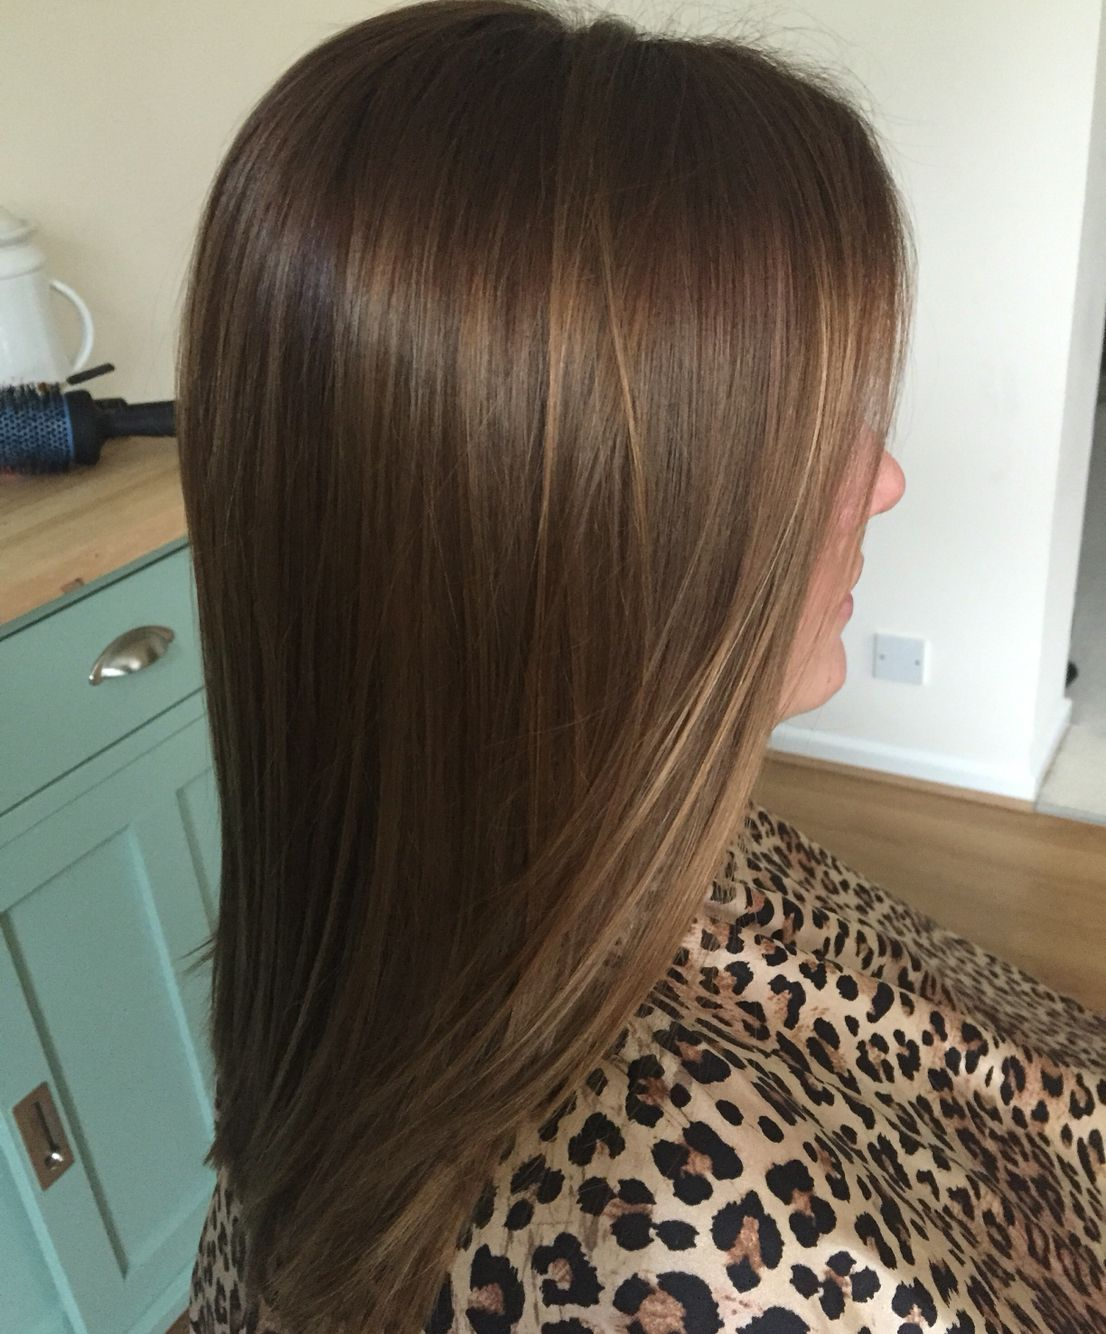 Chocolate Golden Brown Hair With Naturally Hand Painted